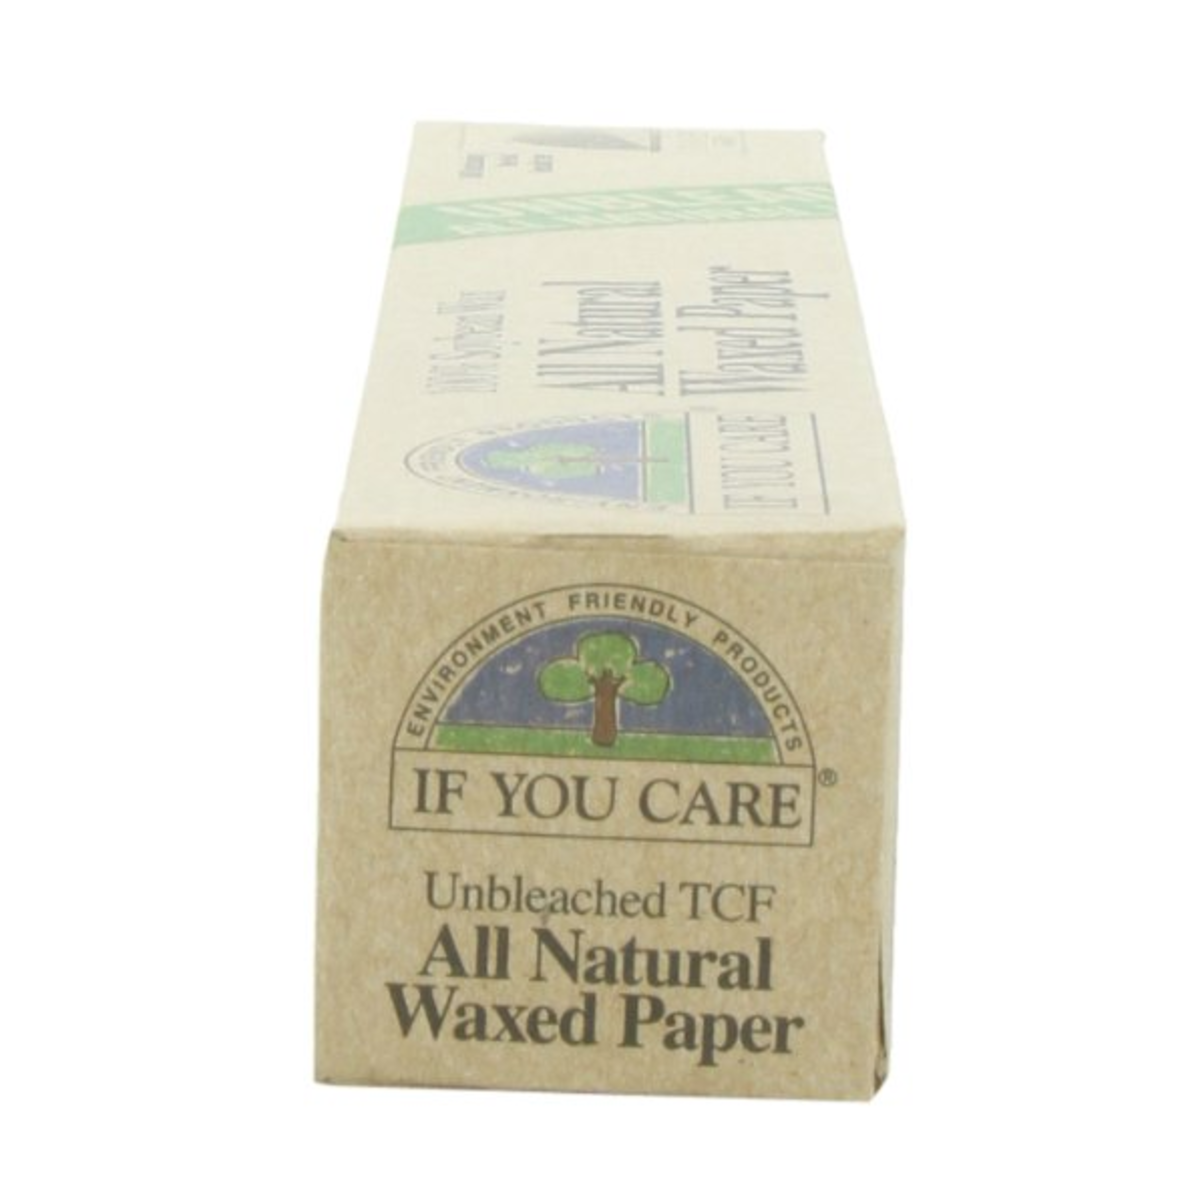 unbleached_wax_paper